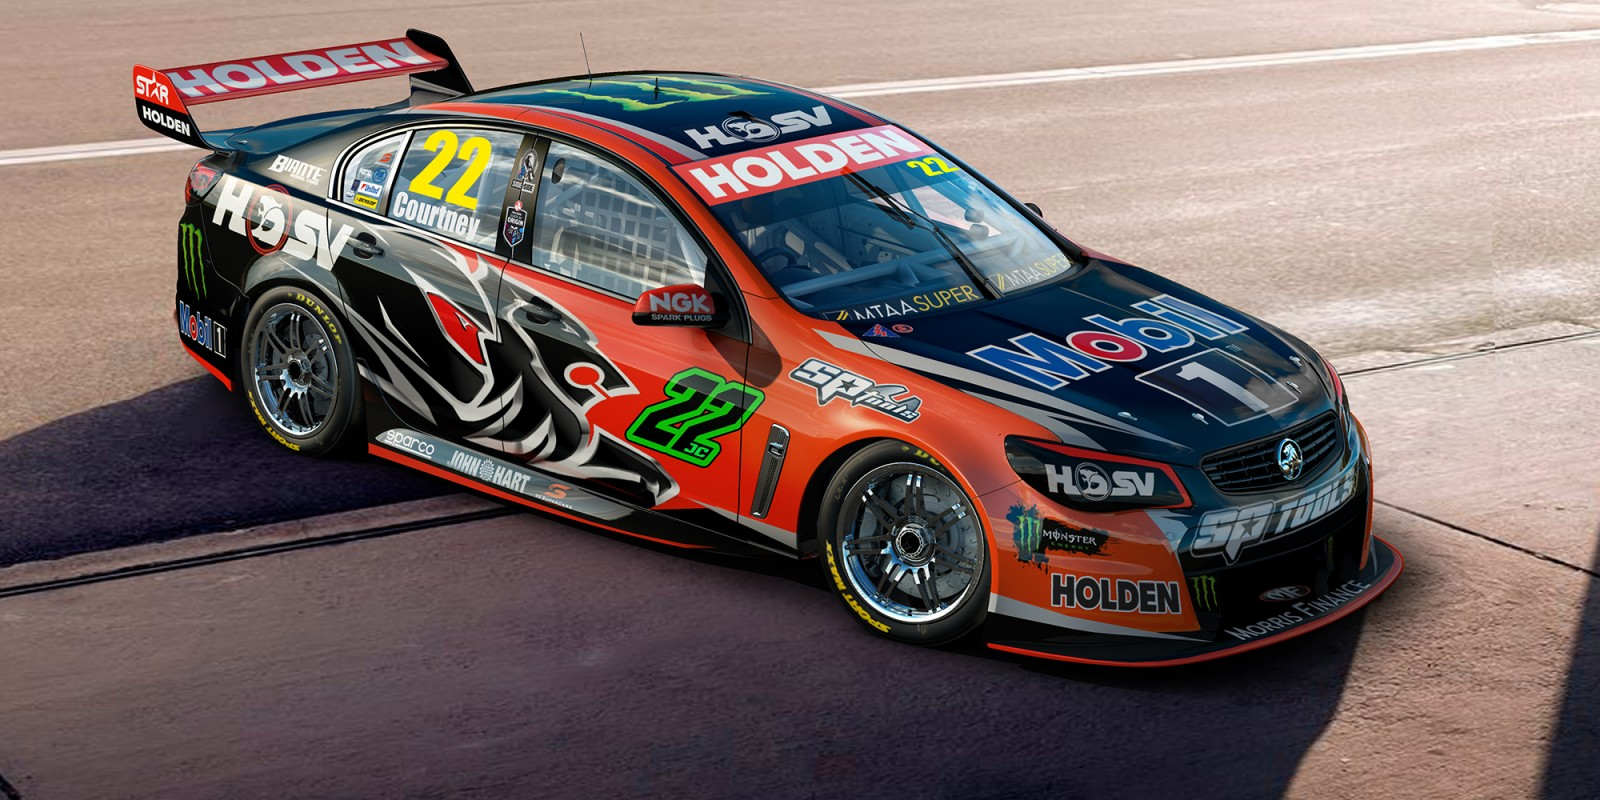 Monster rides with JC in hunt for 2016 V8 Supercars crown